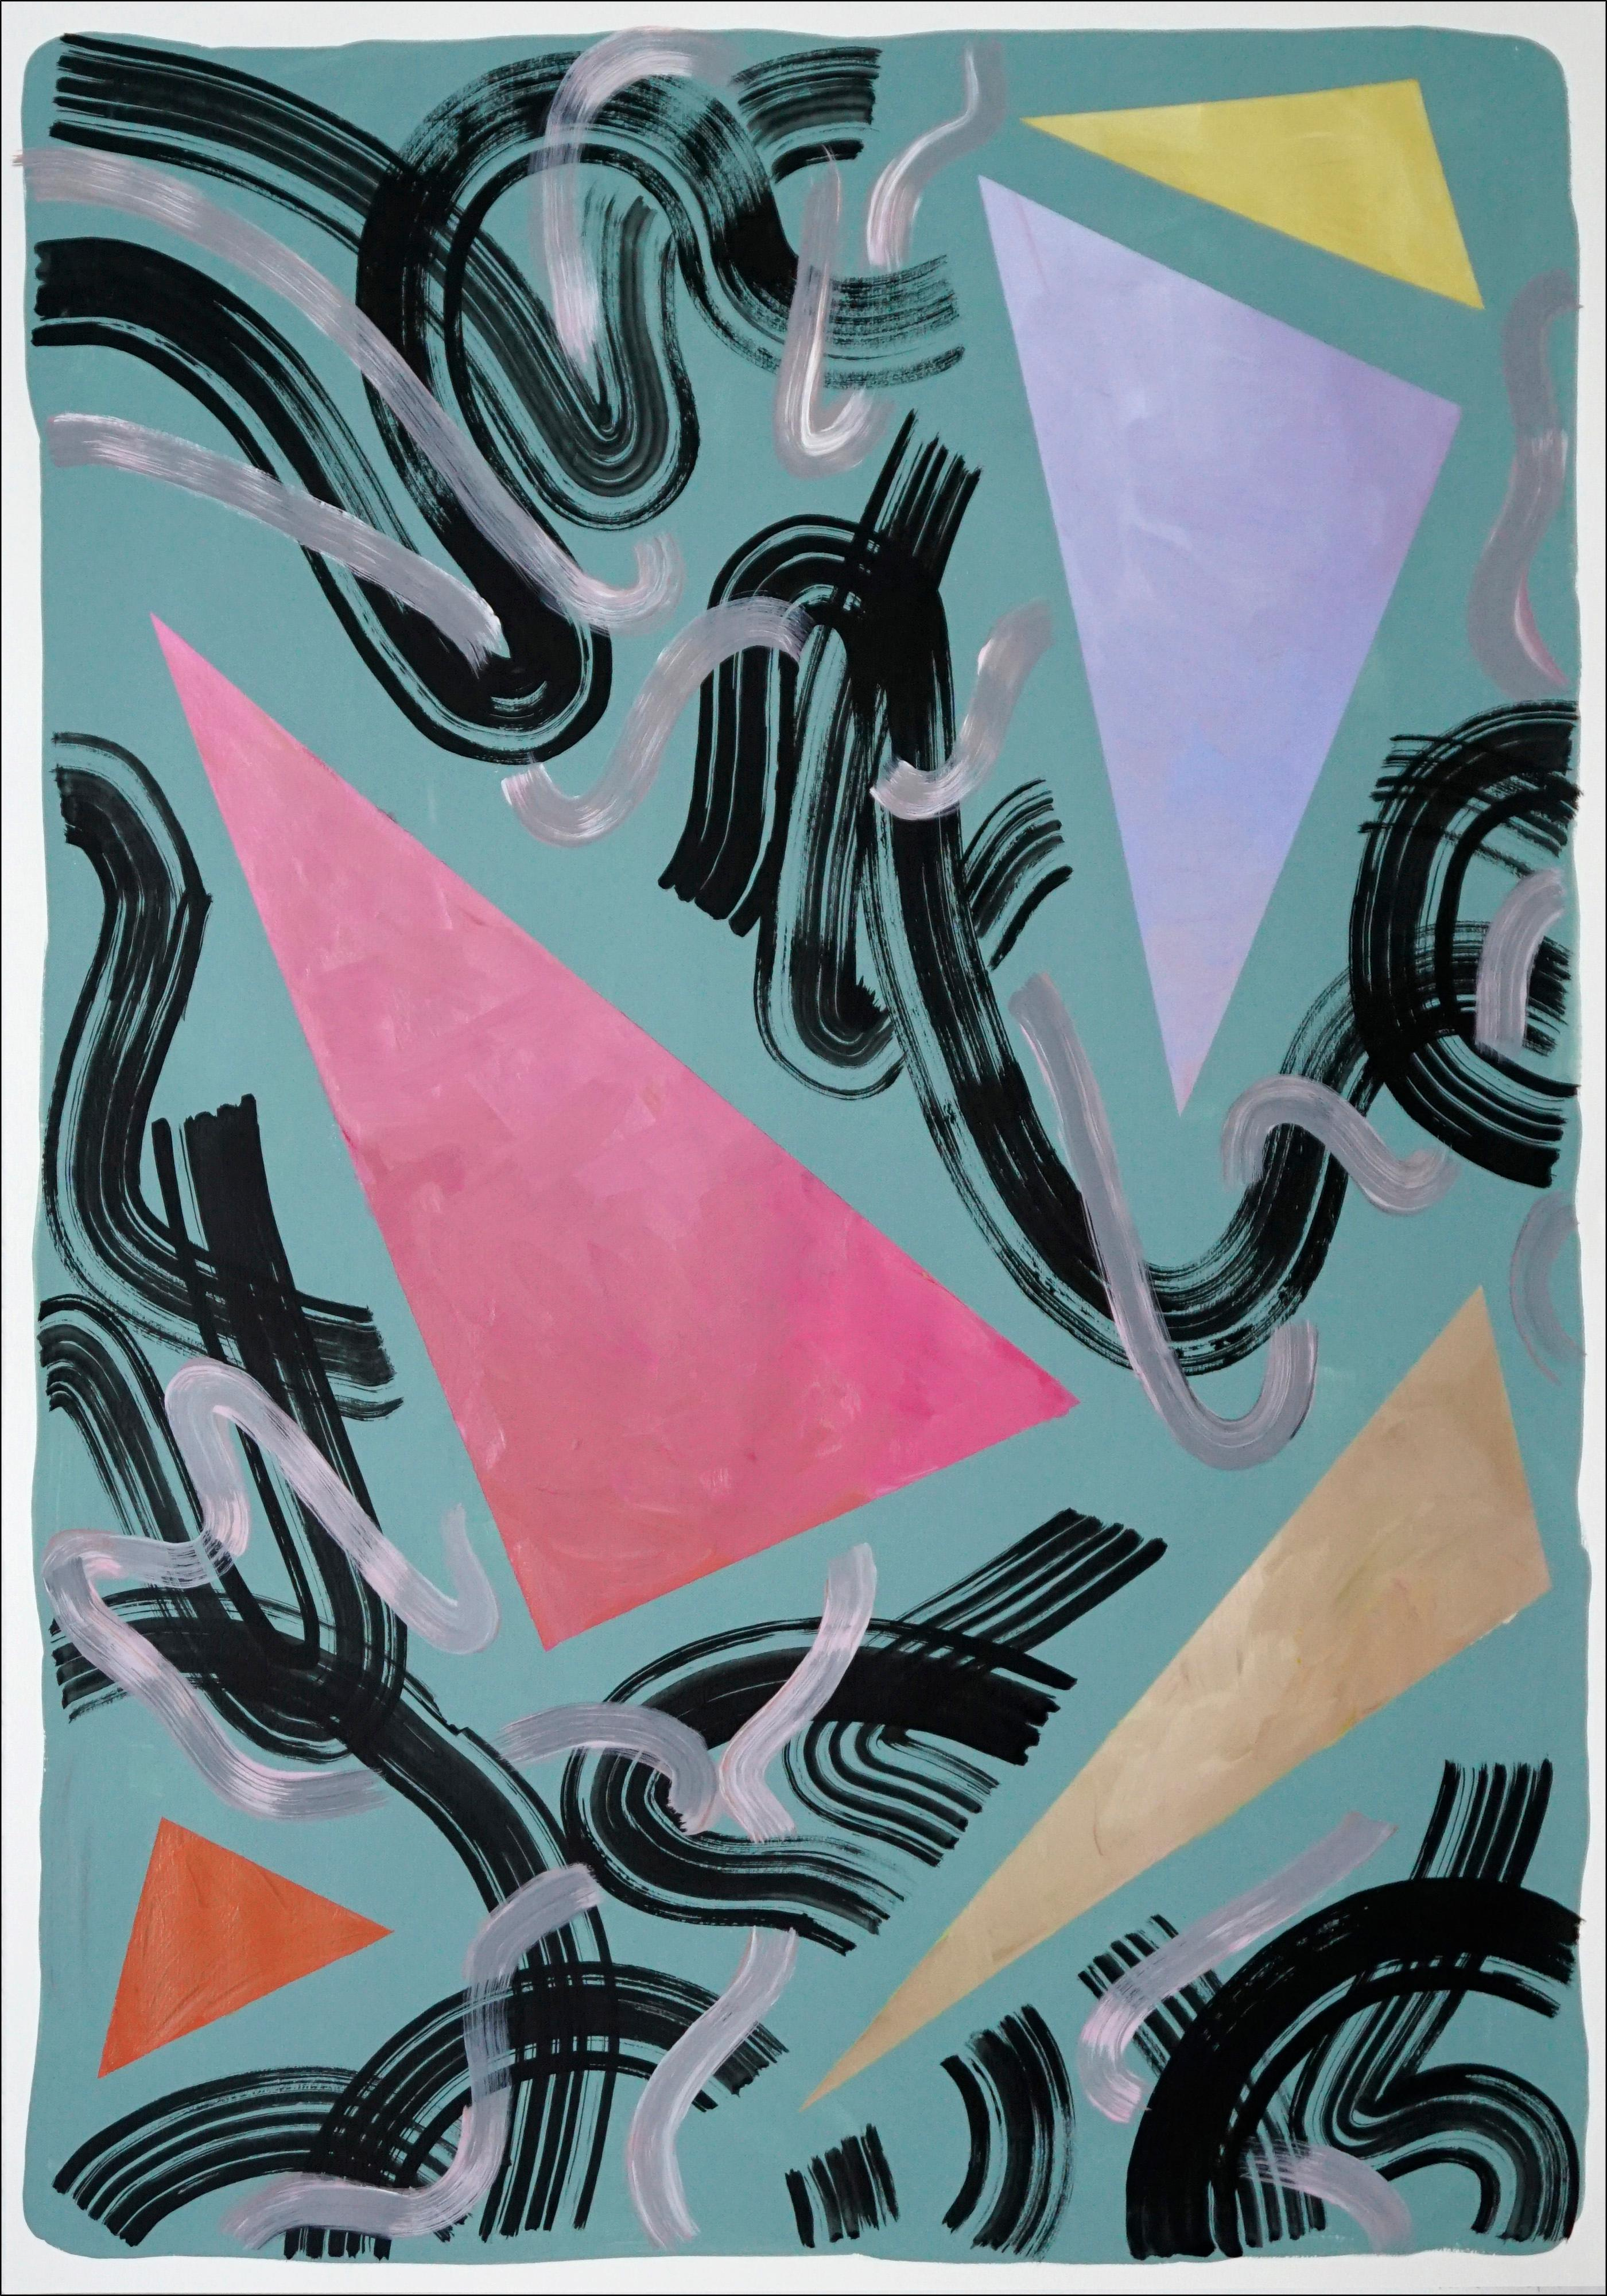 Eighty Primary Shapes on Green, Retro Futuristic Painting on Paper, Triangles